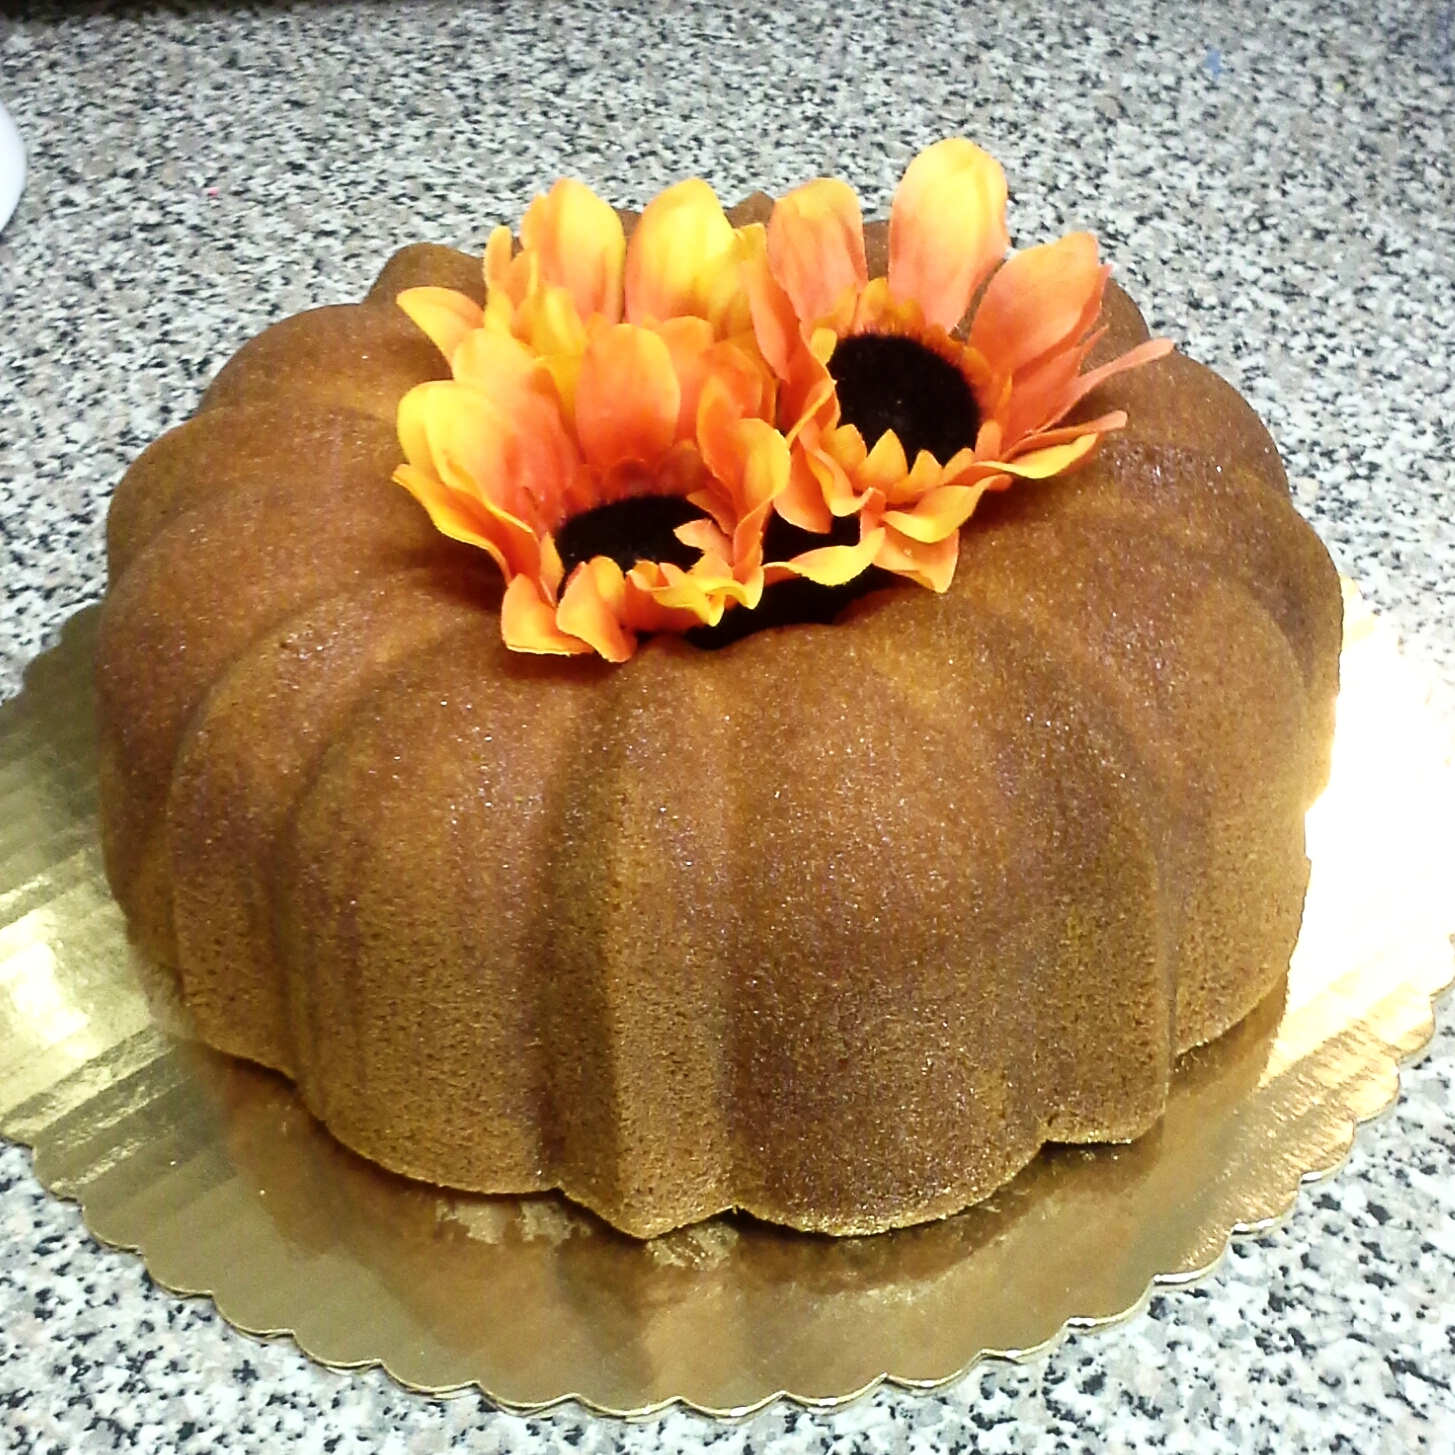 Bundt cake with flowers in the middle